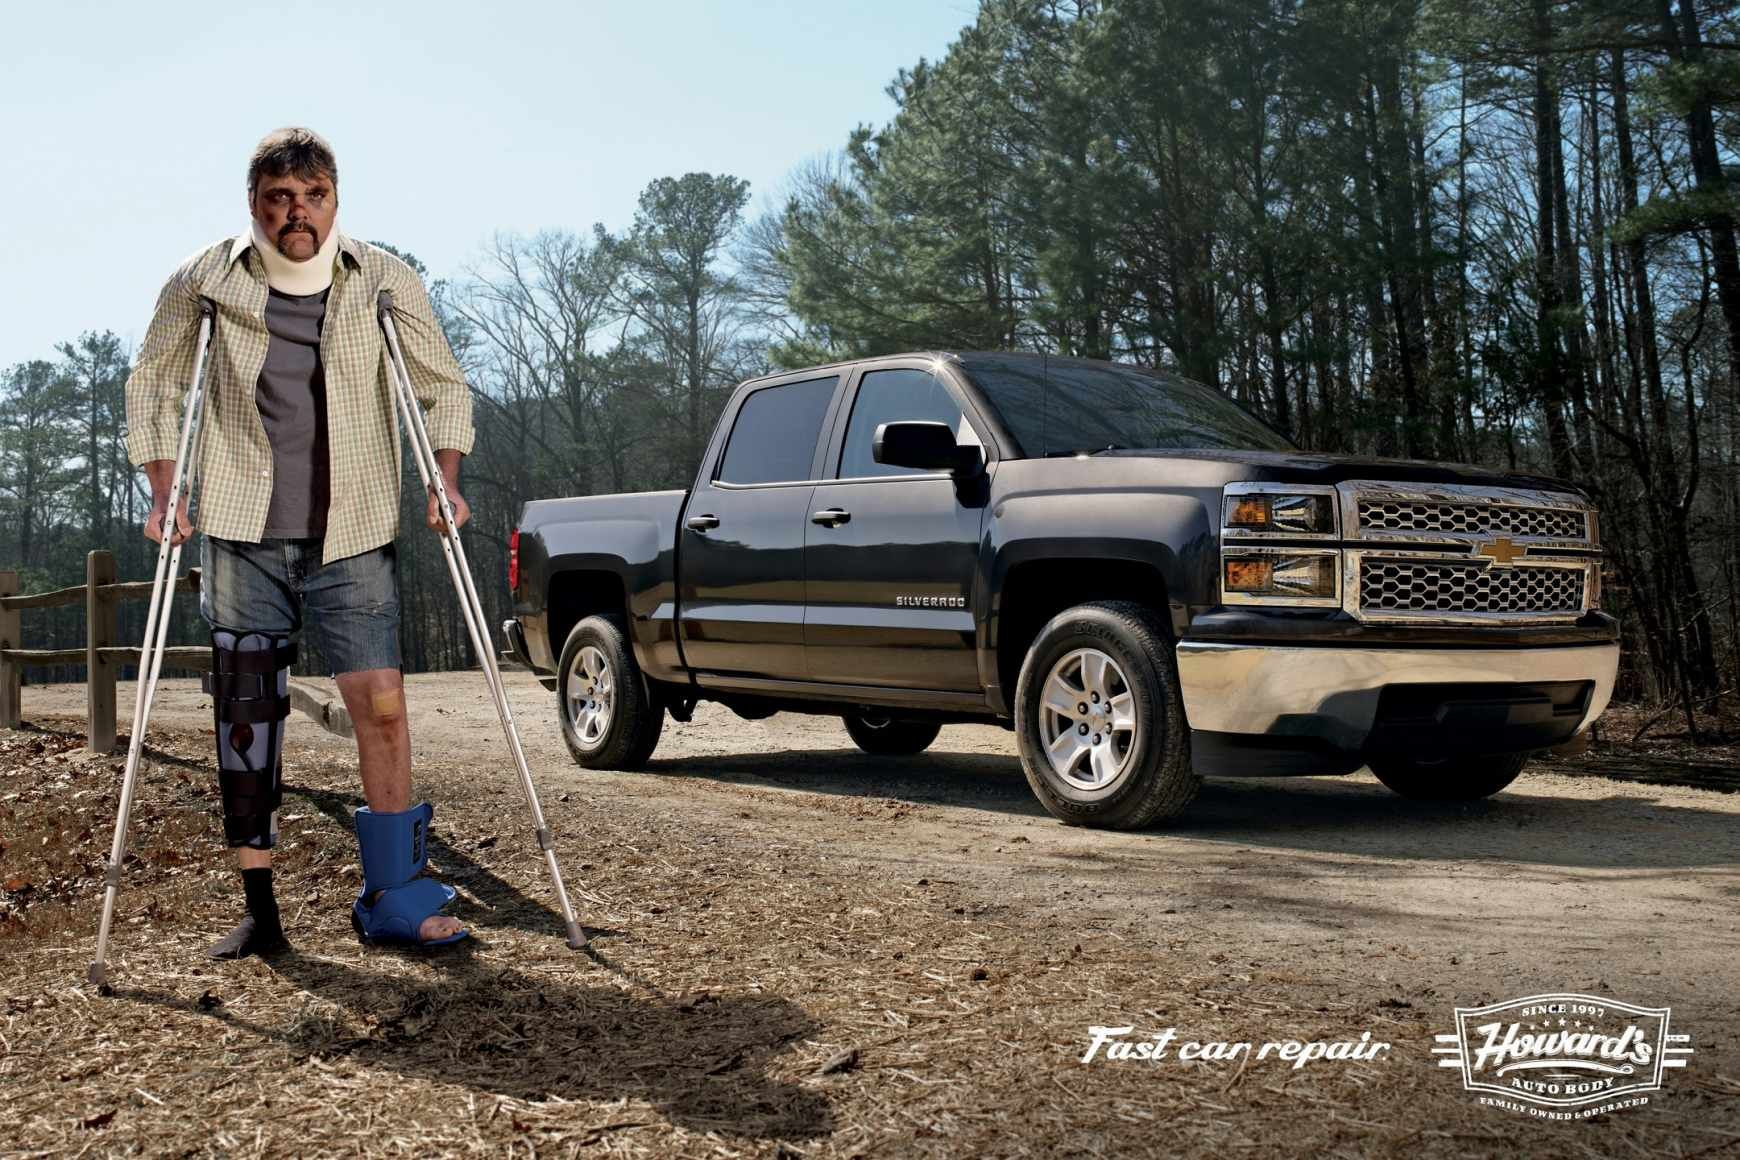 Howards auto body truck ads of the world publicidad